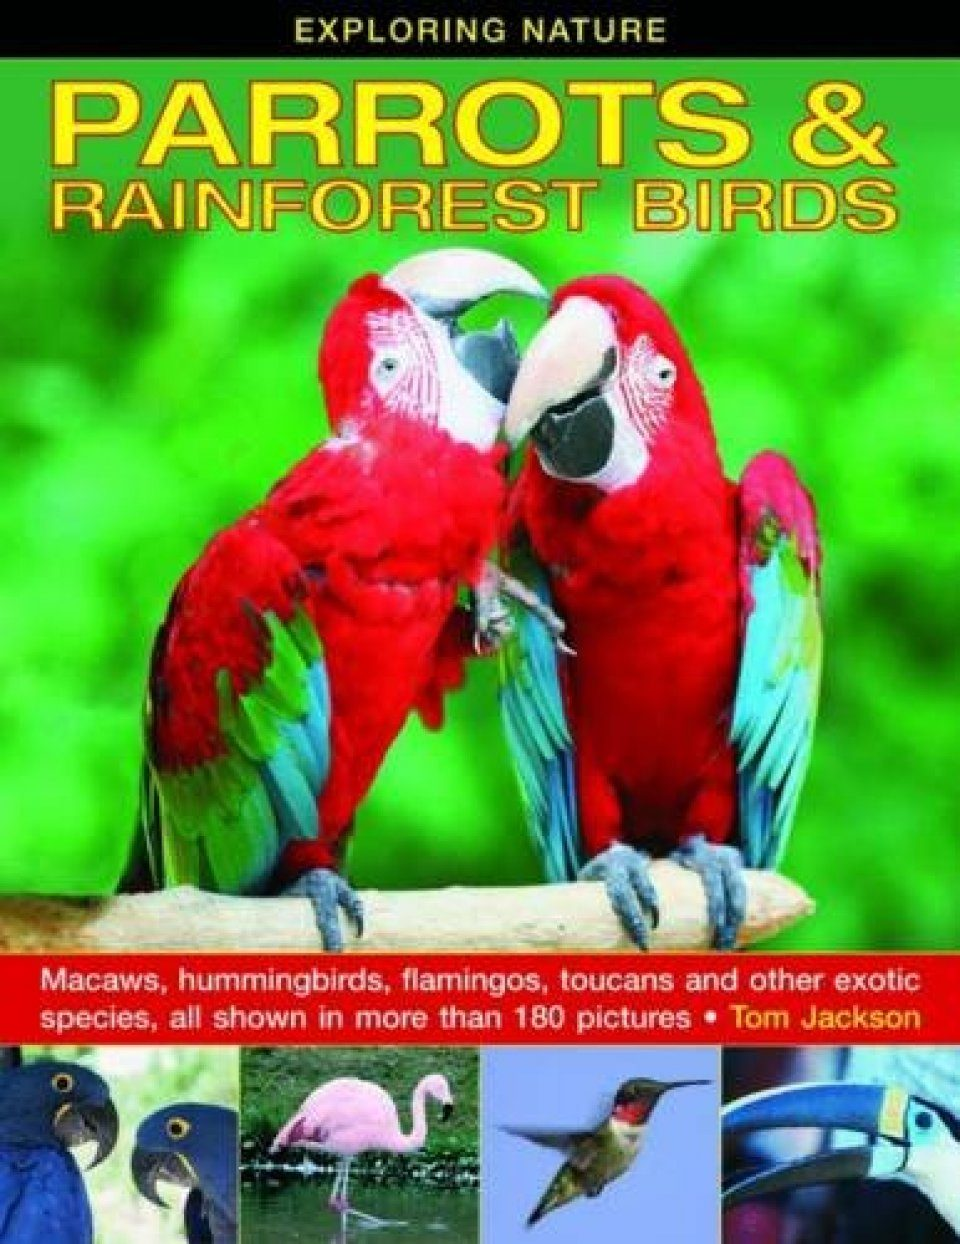 Parrots & Rainforest Birds